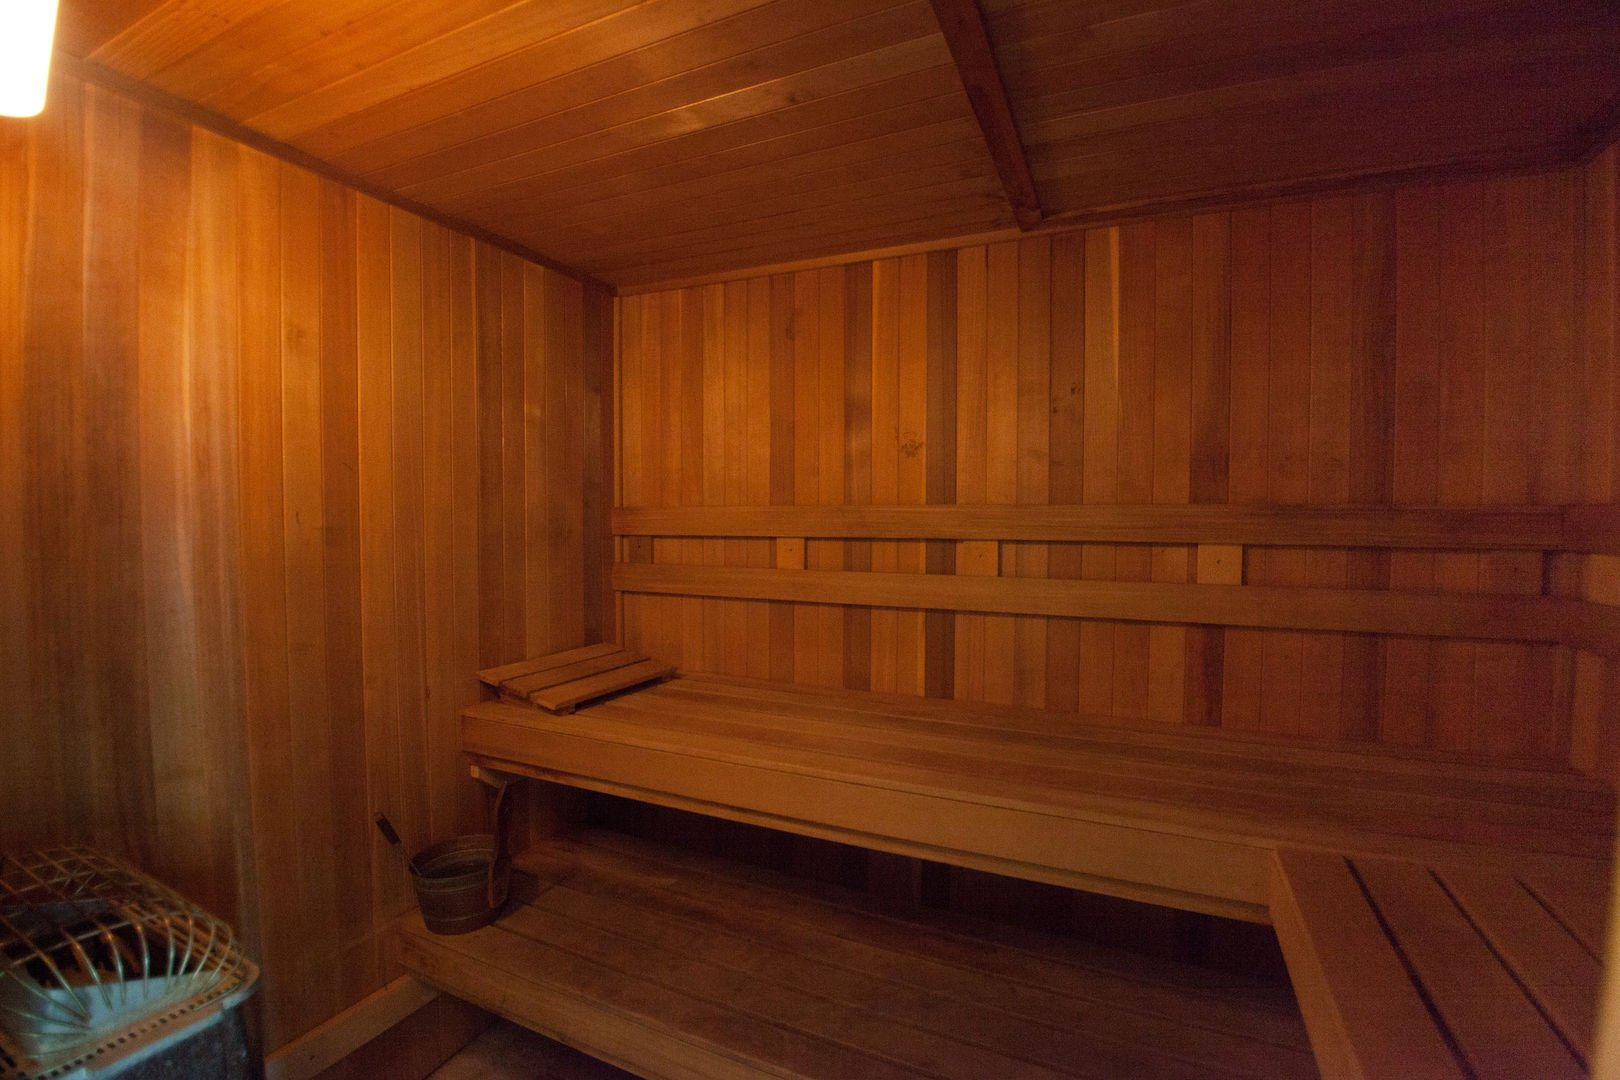 Picture of the Sauna.